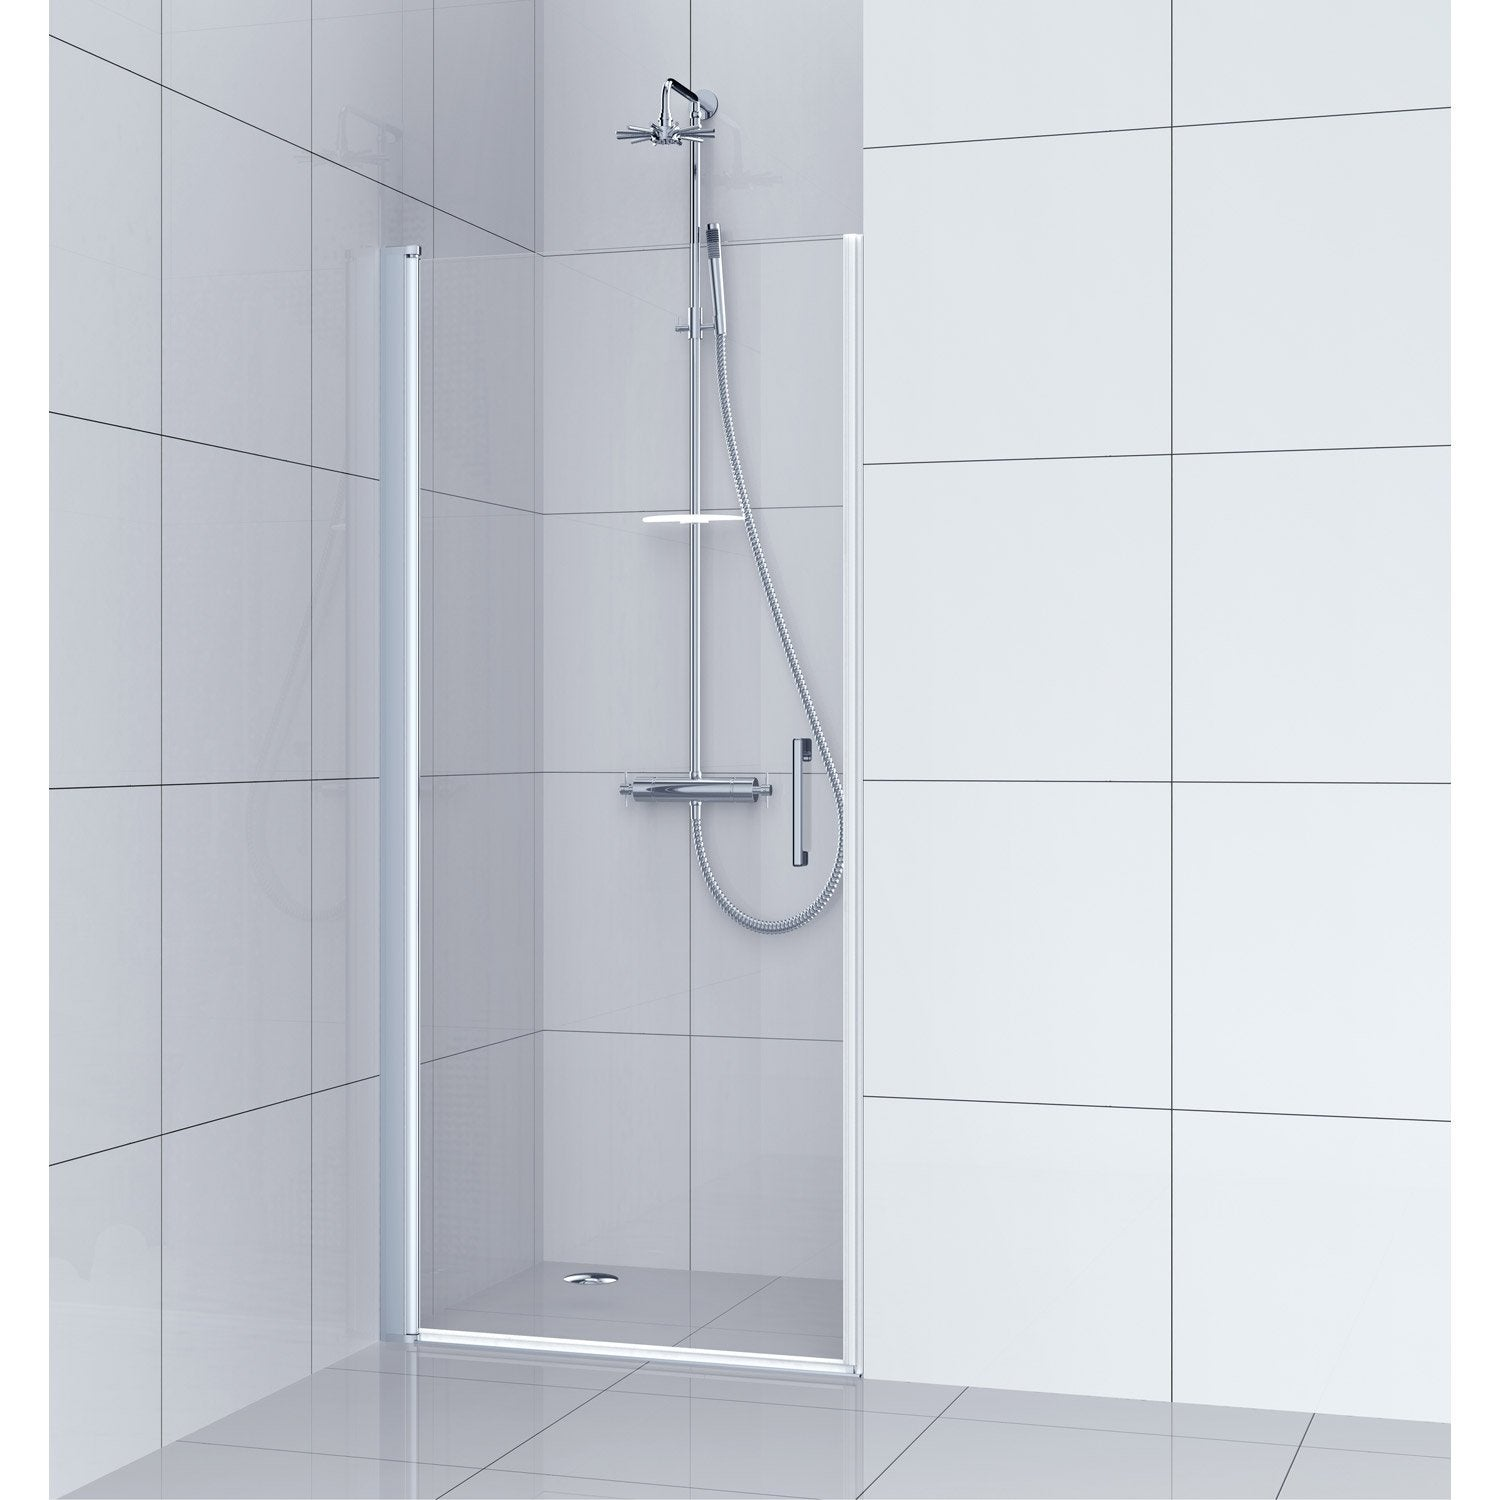 Porte de douche pivotante 100 cm transparent remix for Porte de douche leroy merlin